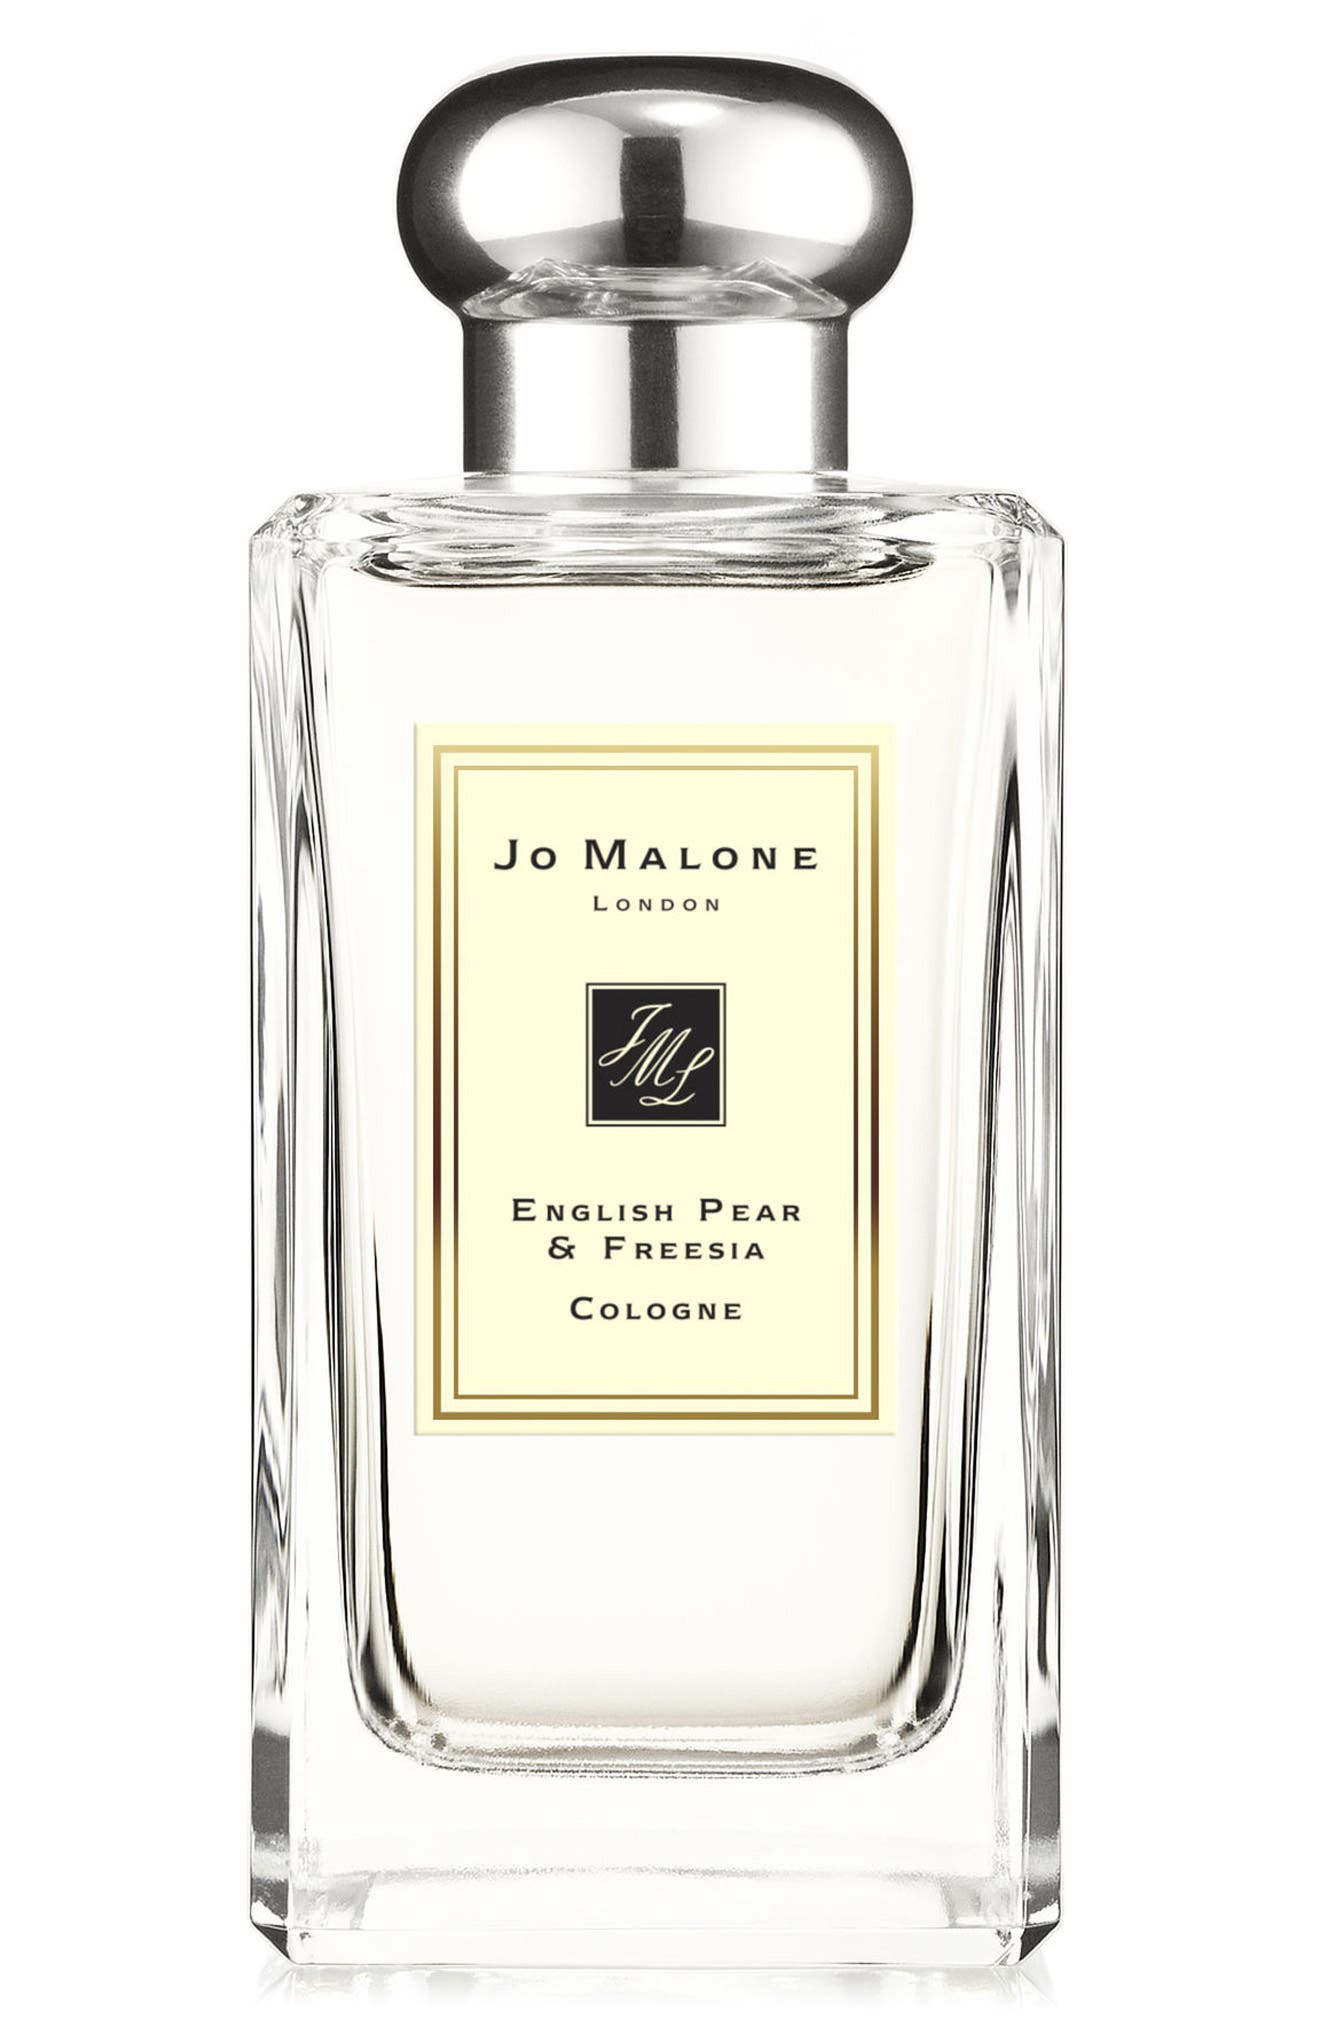 Jo Malone London™ English Pear & Freesia Cologne